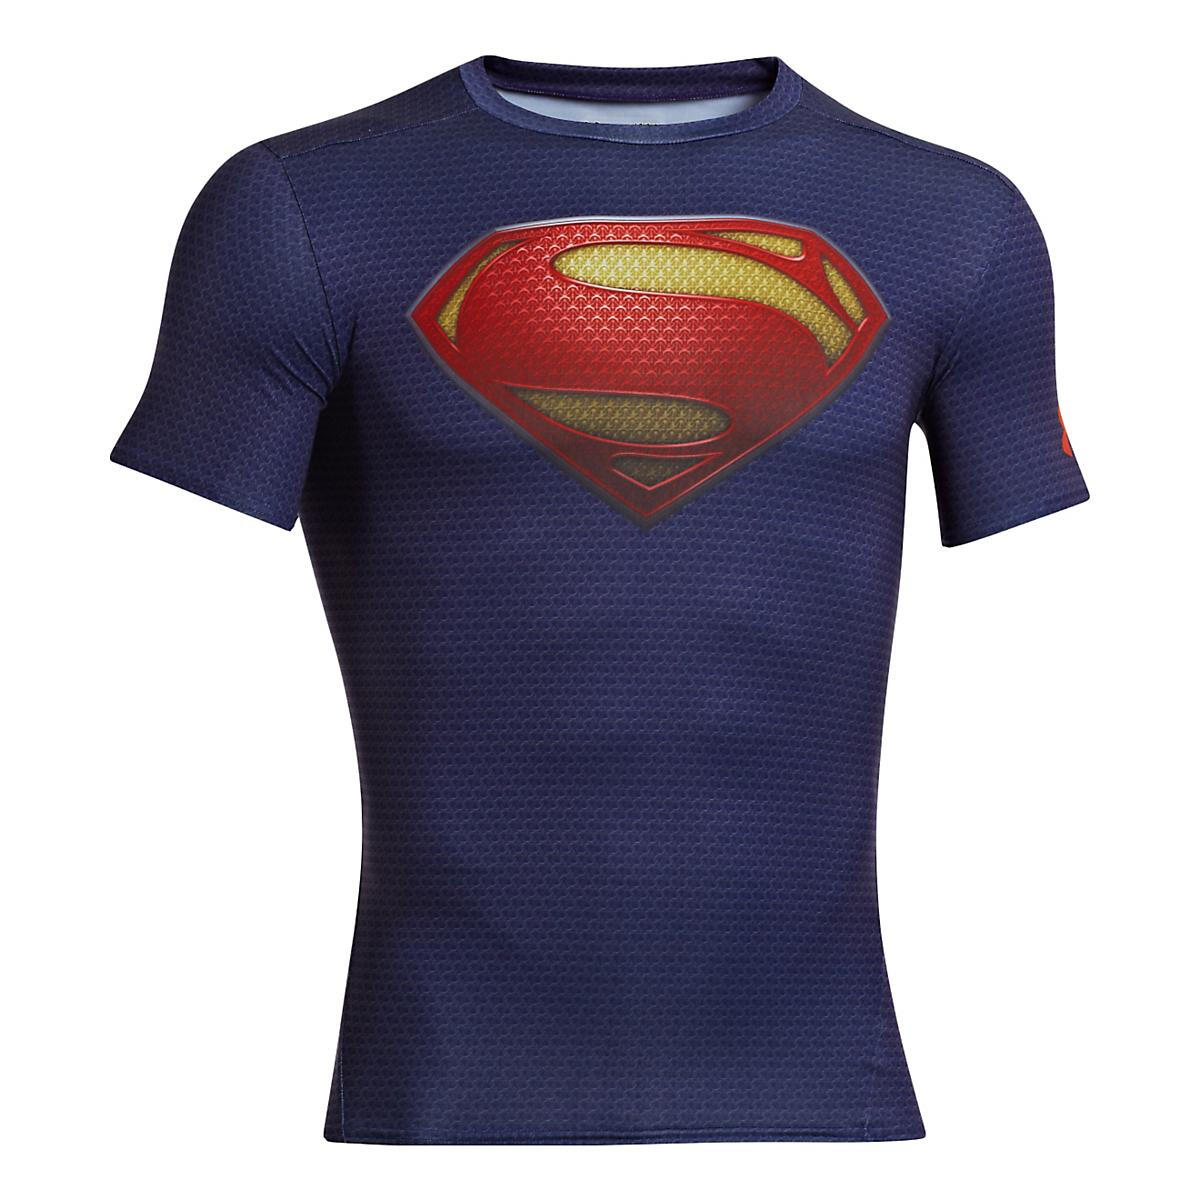 Men's Under Armour�Alter Ego Compression Short Sleeve